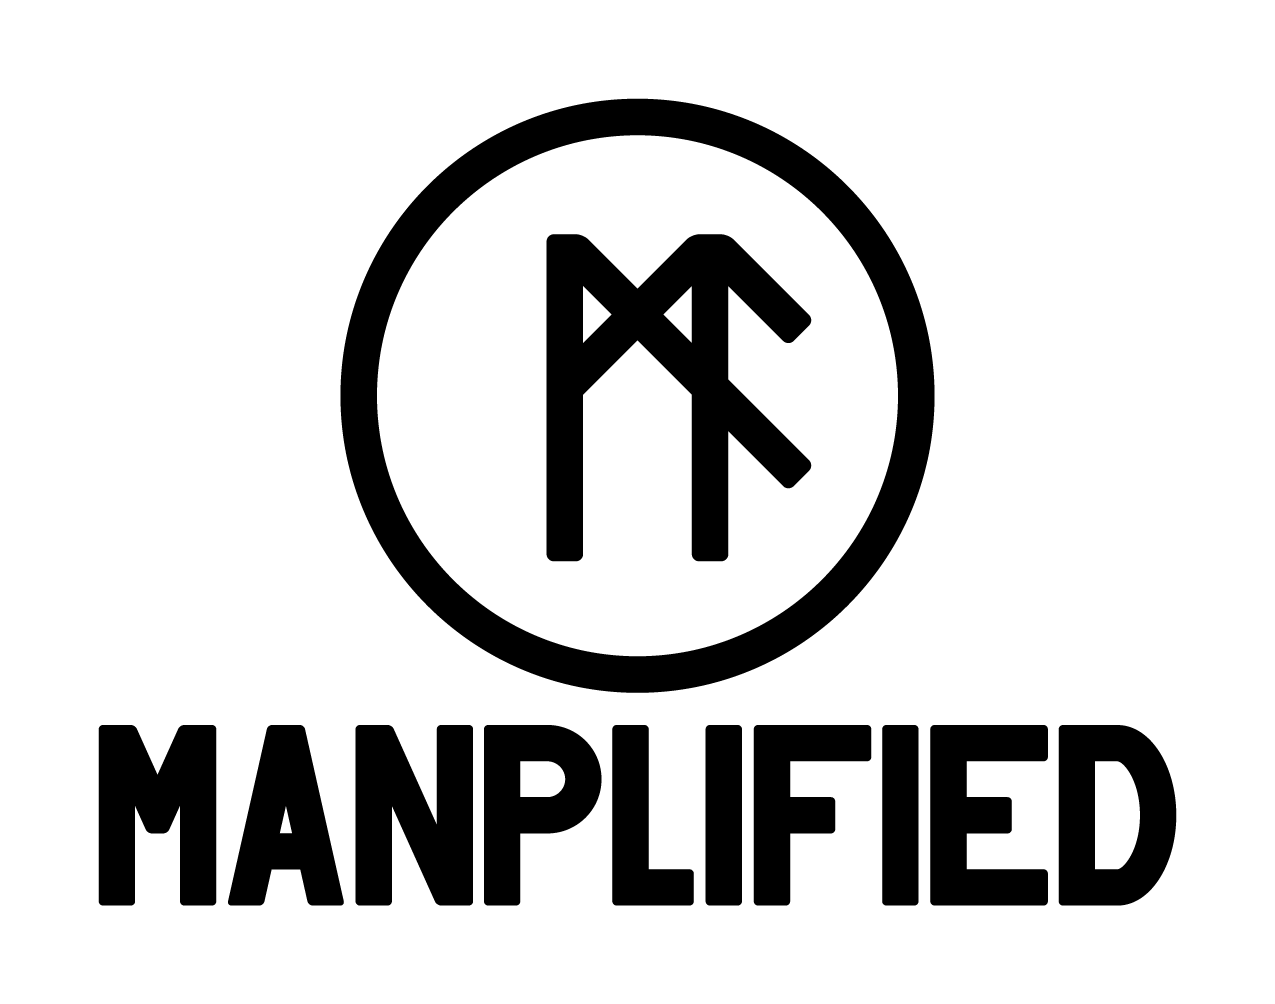 Manplified logo (large)